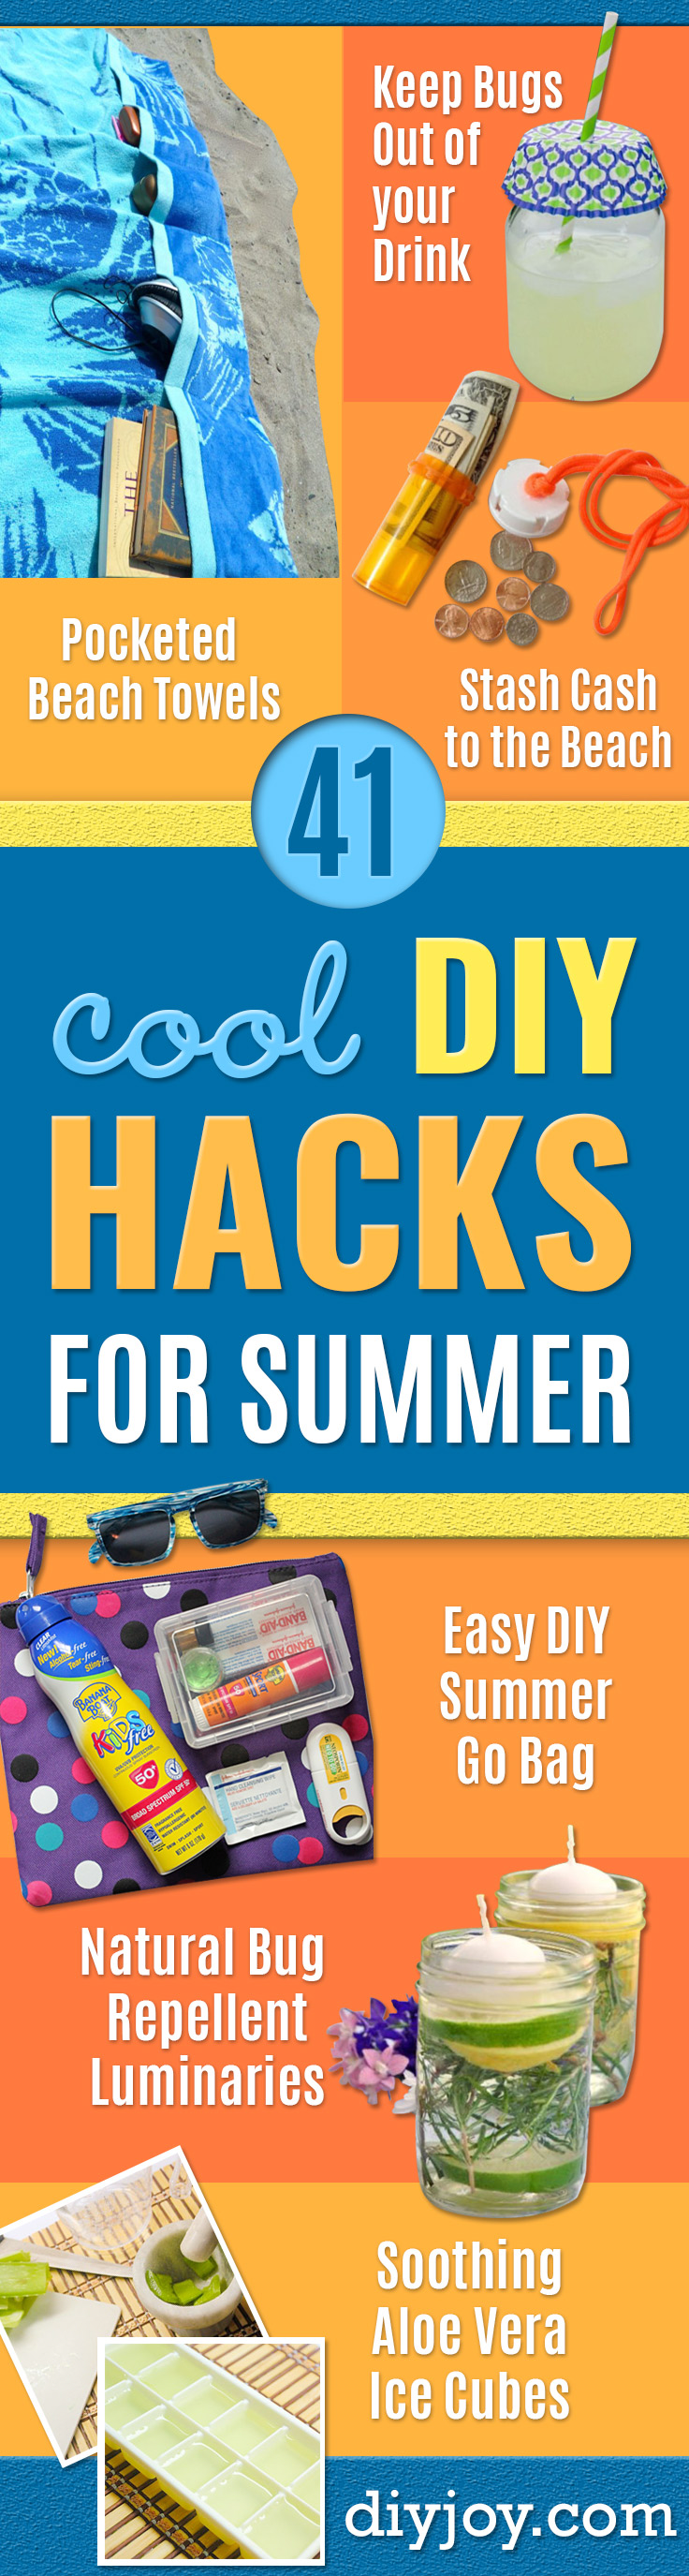 DIY Hacks for Summer - Easy Projects to Try This Summer To Get Organized, Spend Time Outdoors, Play With The Kids, Stay Cool In The Heat - Tips and Tricks to Make Summertime Awesome - Crafts and Home Decor by DIY JOY